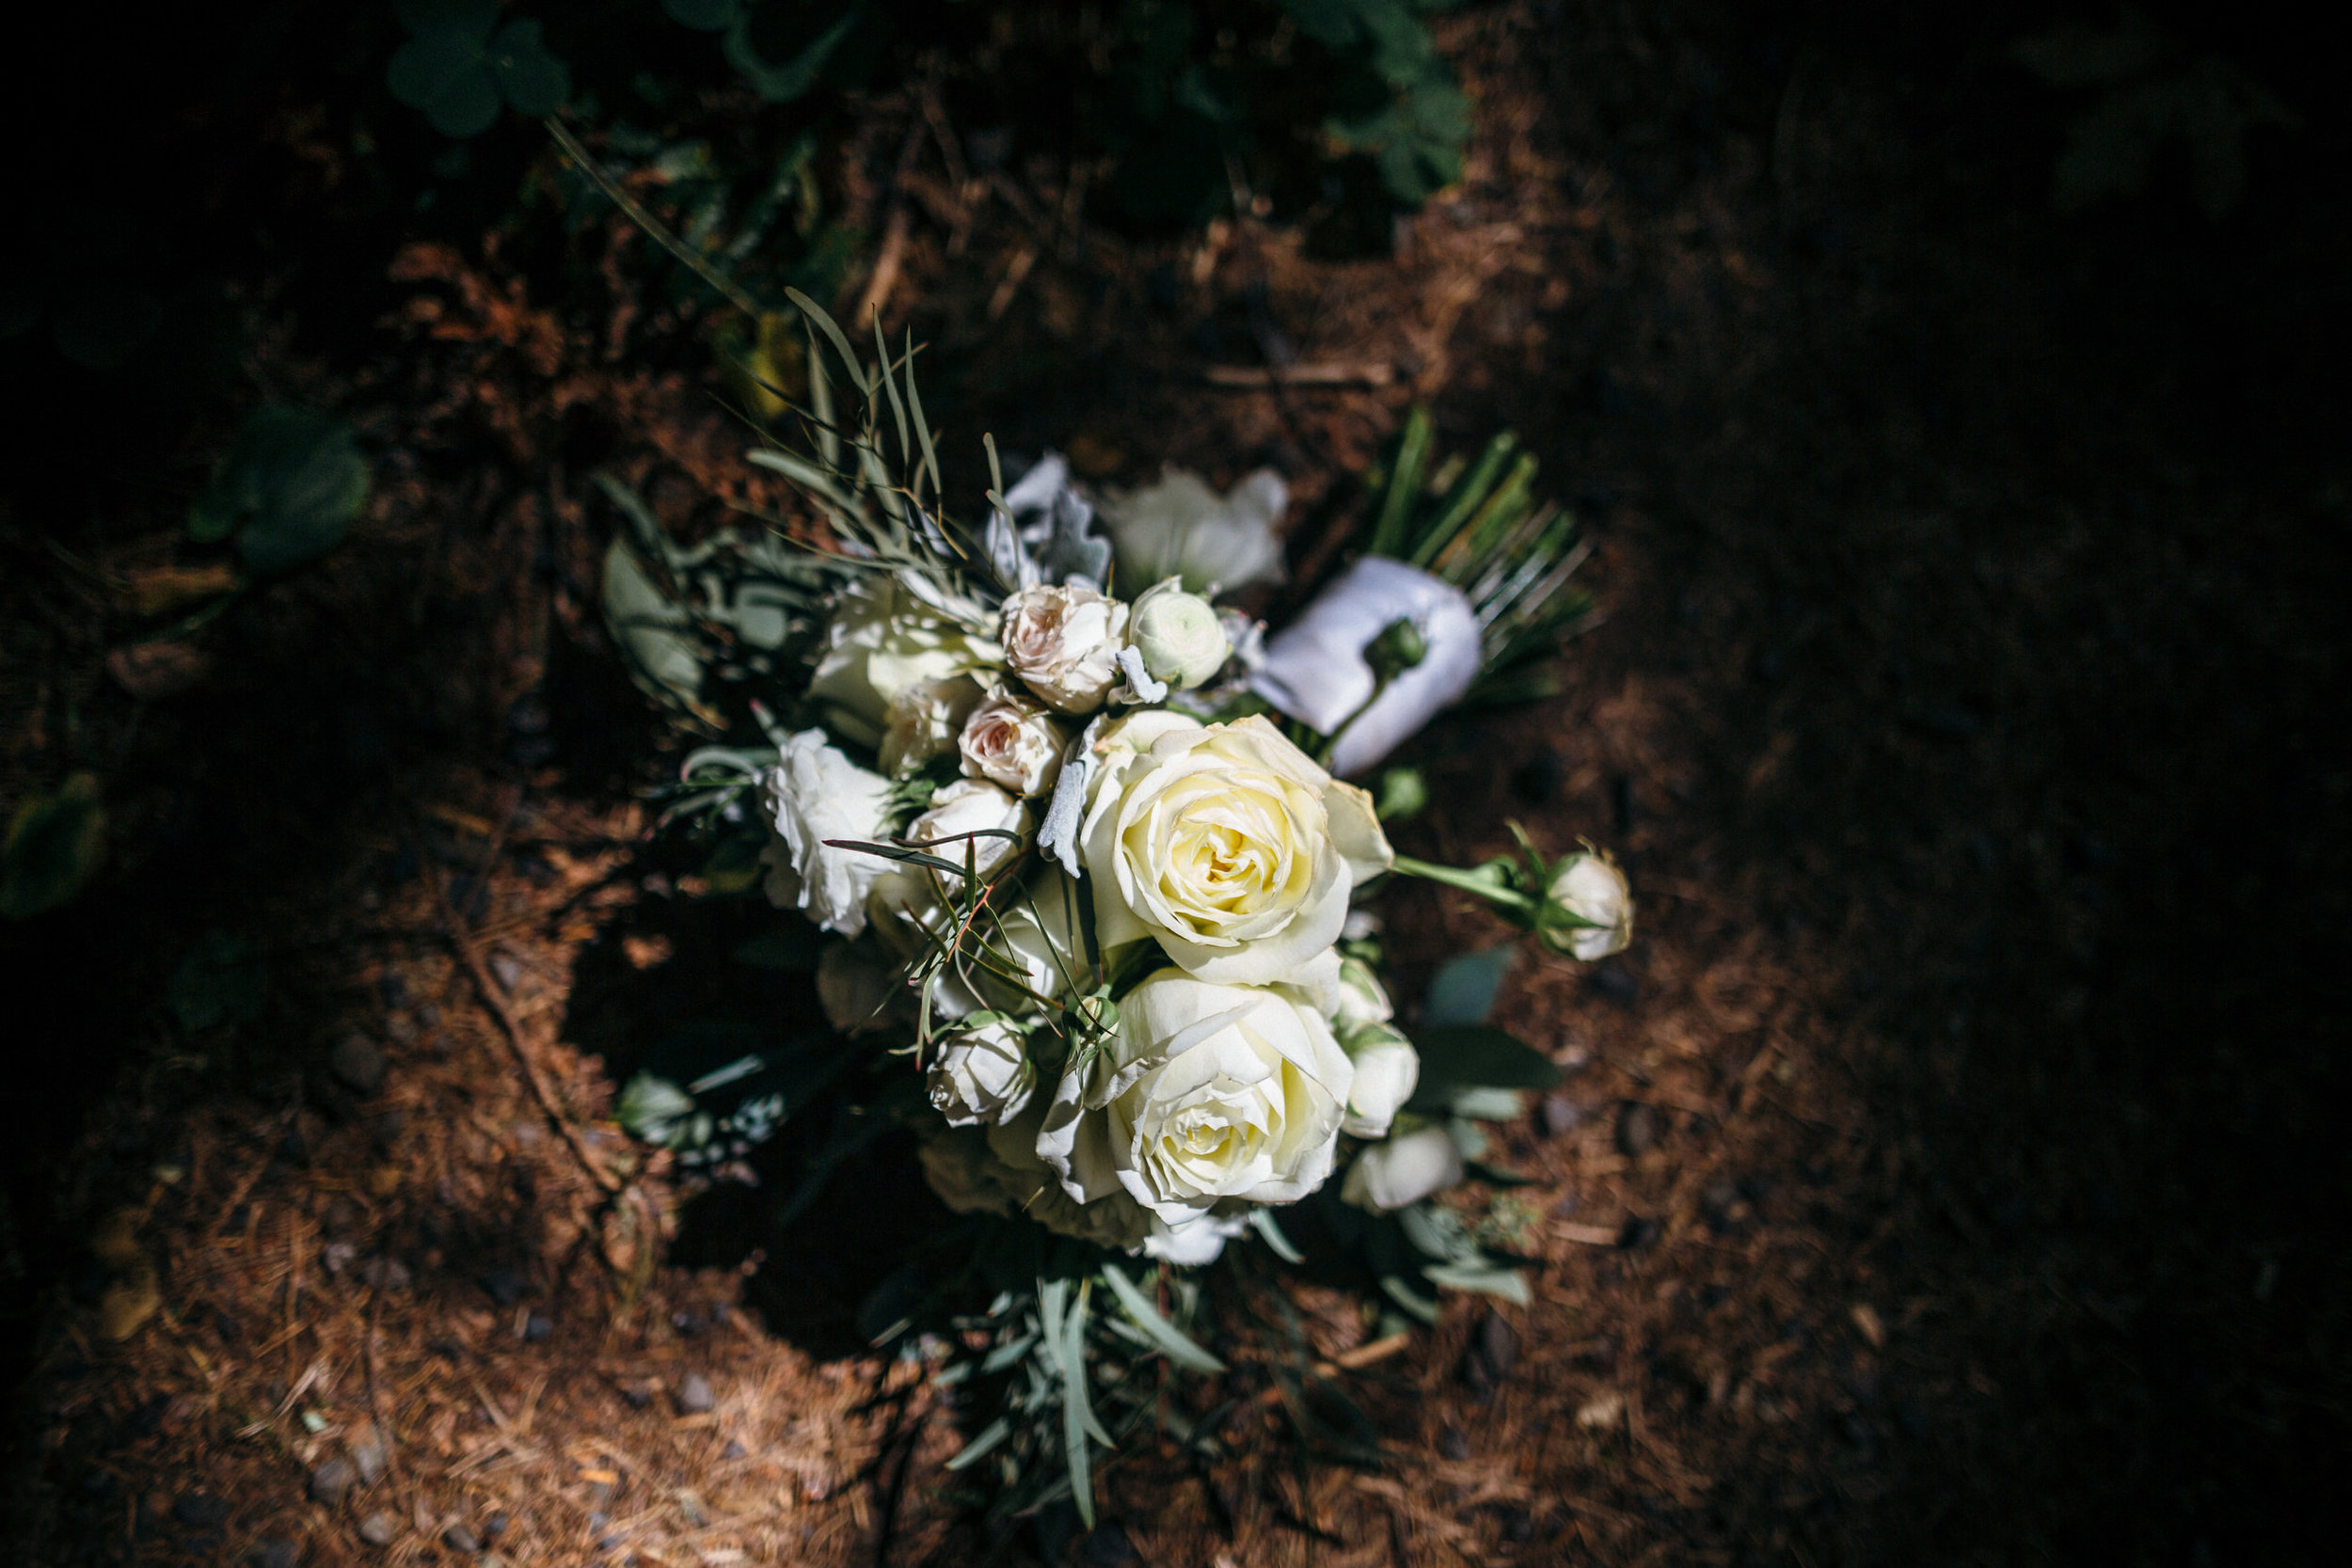 MT Hood Wildwood elopement wedding oregon portland photography0077.JPG